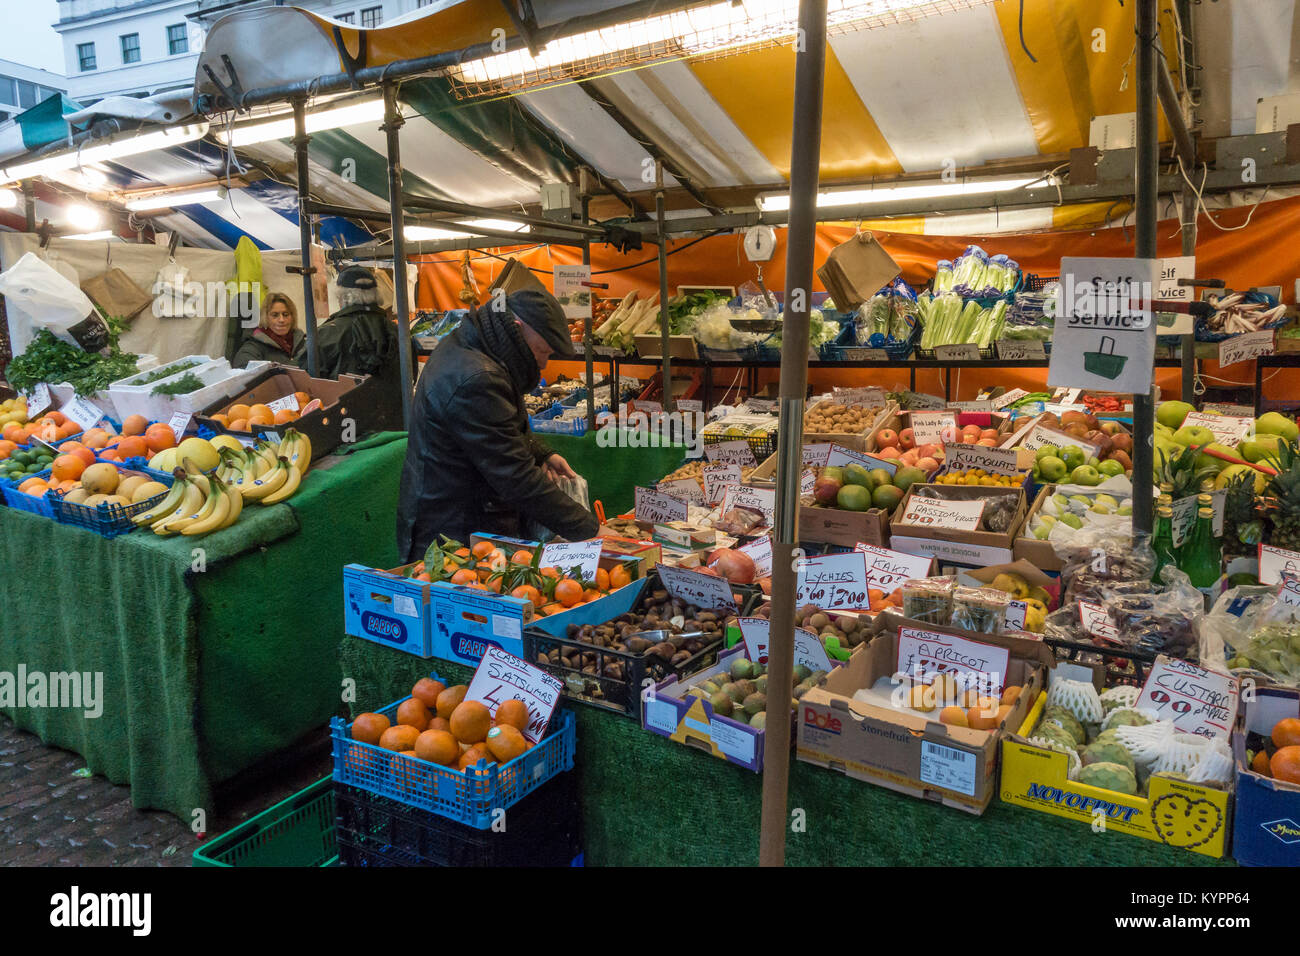 self-service-green-grocer-stall-market-h